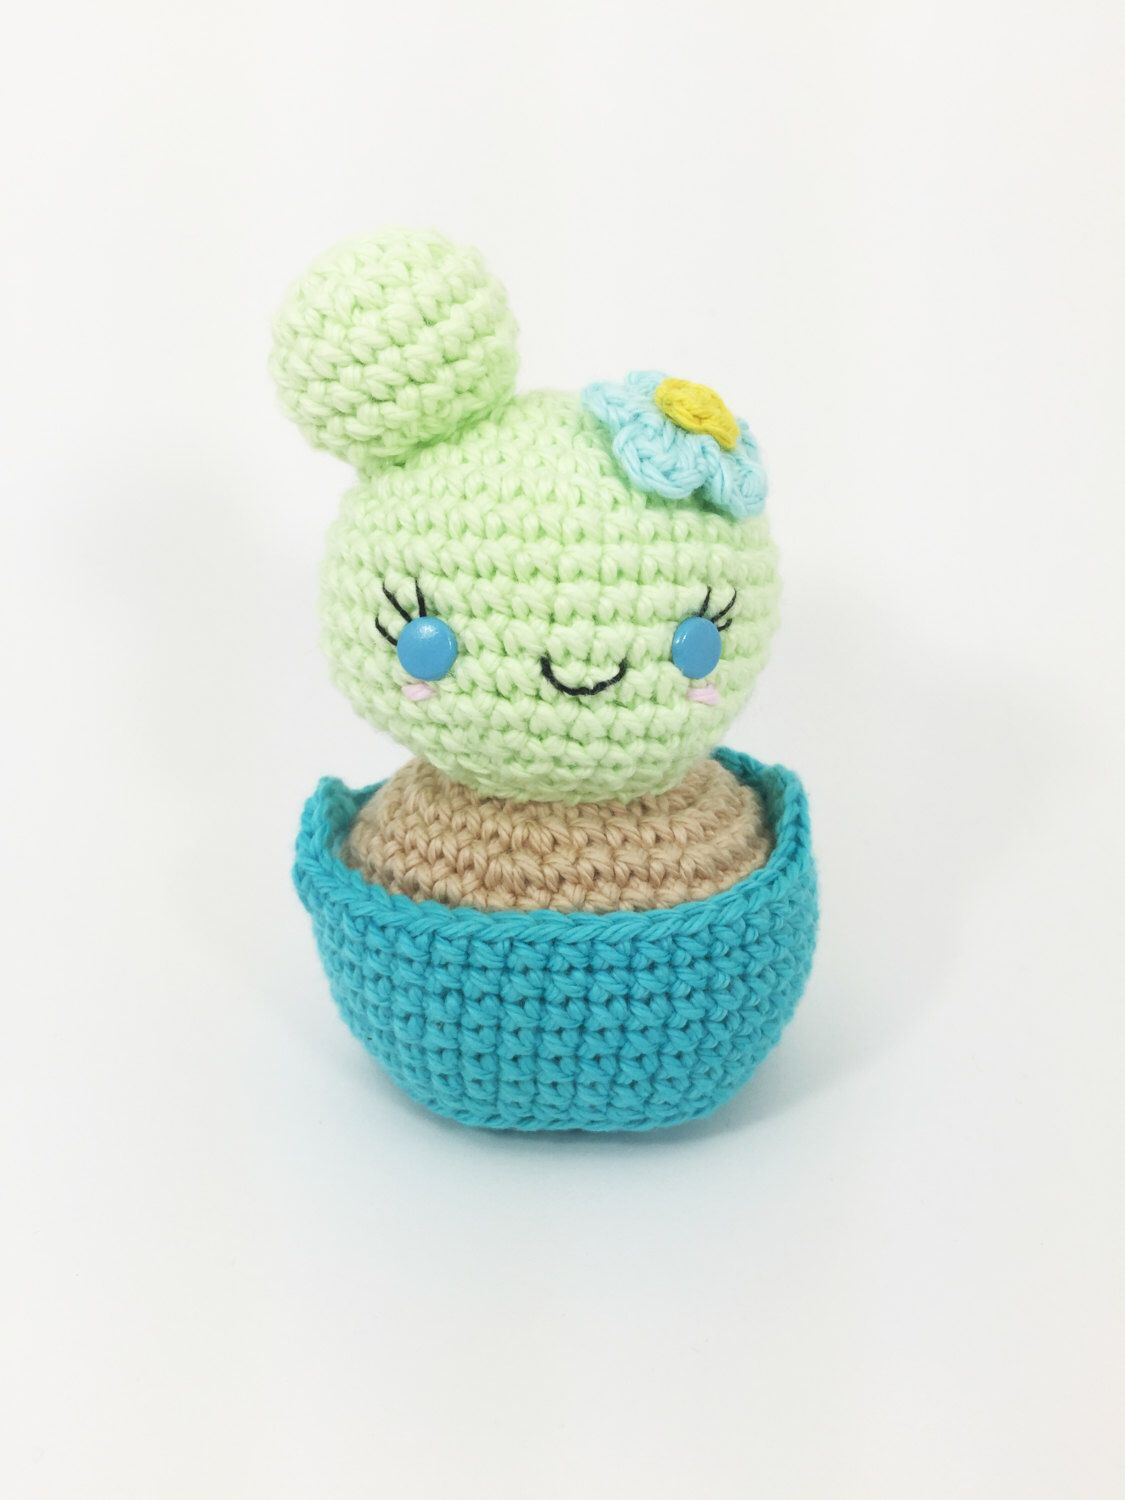 Crocheted Cactus, Crochet Plant, Crochet Home Decor, Kawaii Decor, Crochet Nursery, Crochet Southwestern, Amigurumi Cactus, Crochet Pastel by MossyMaze on Etsy https://www.etsy.com/listing/232526185/crocheted-cactus-crochet-plant-crochet